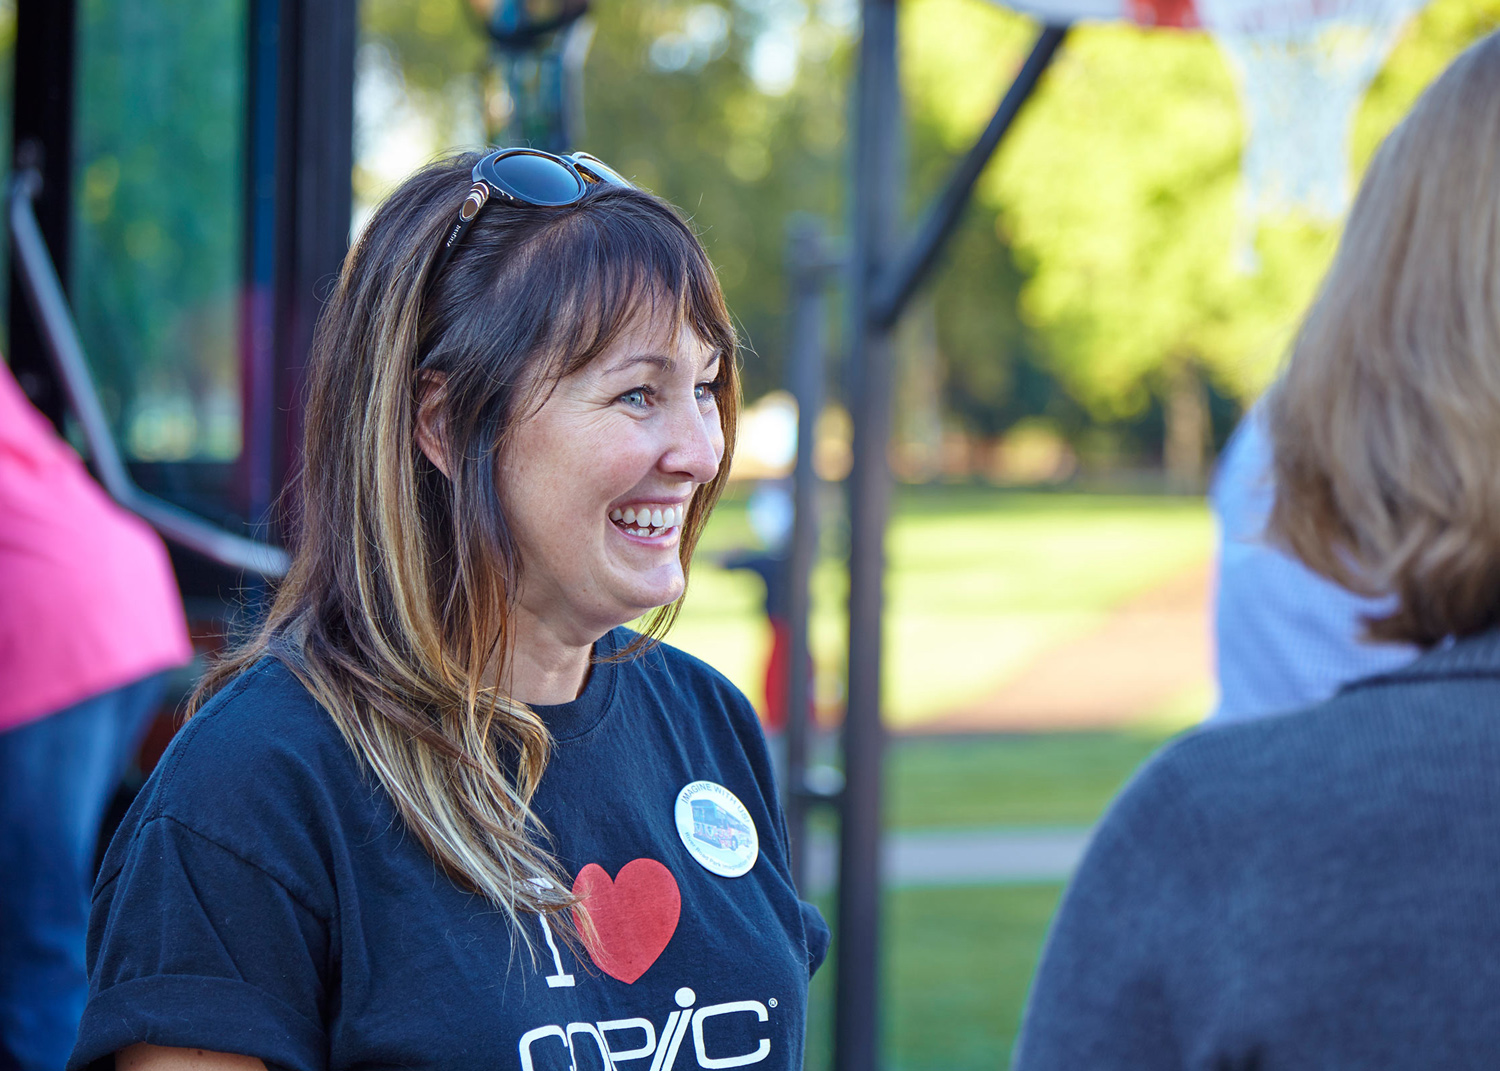 At Work in the Community - We believe that when a handful of dedicated people commit to making their community a healthier, more vibrant place, we all benefit.